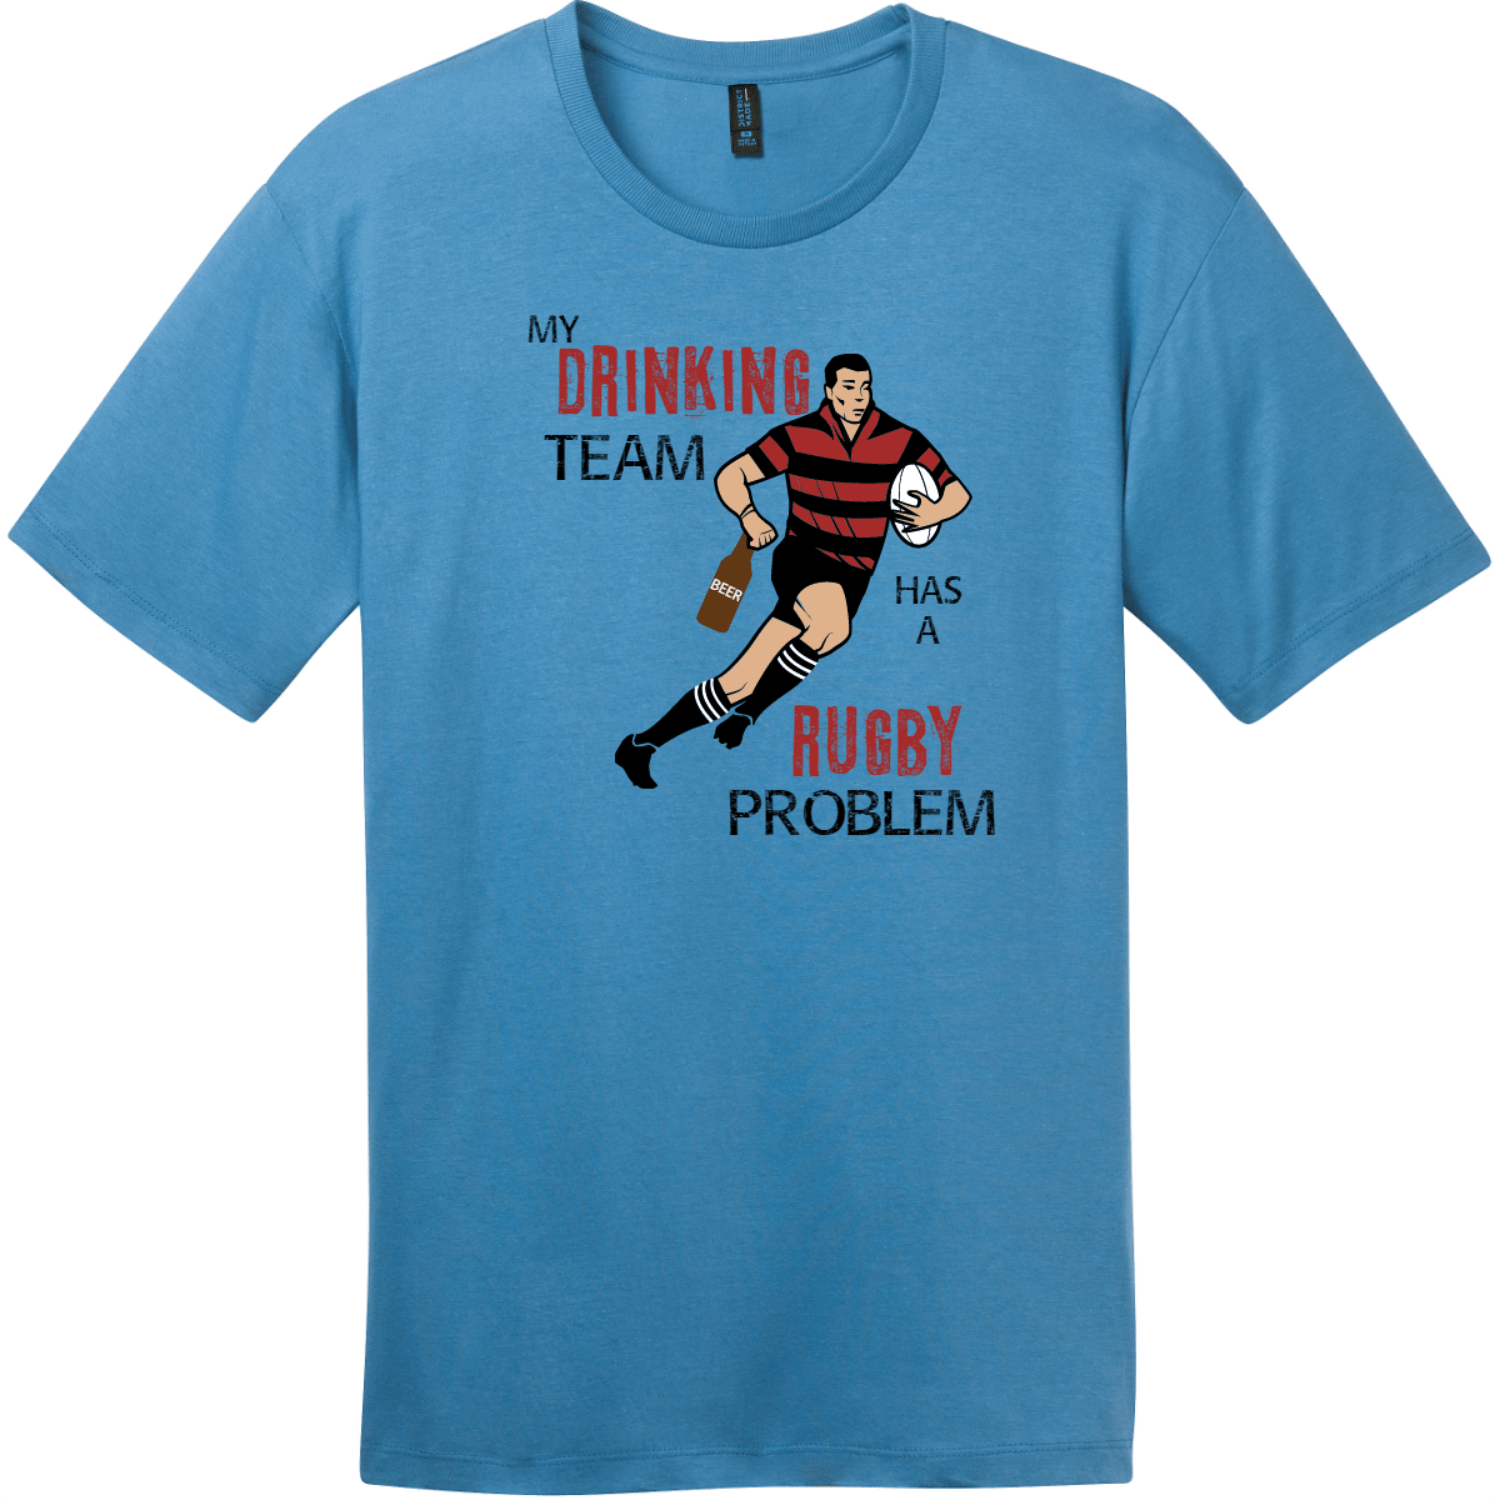 My Drinking Team Has A Rugby Problem T-Shirt Clean Denim District Perfect Weight Tee DT104